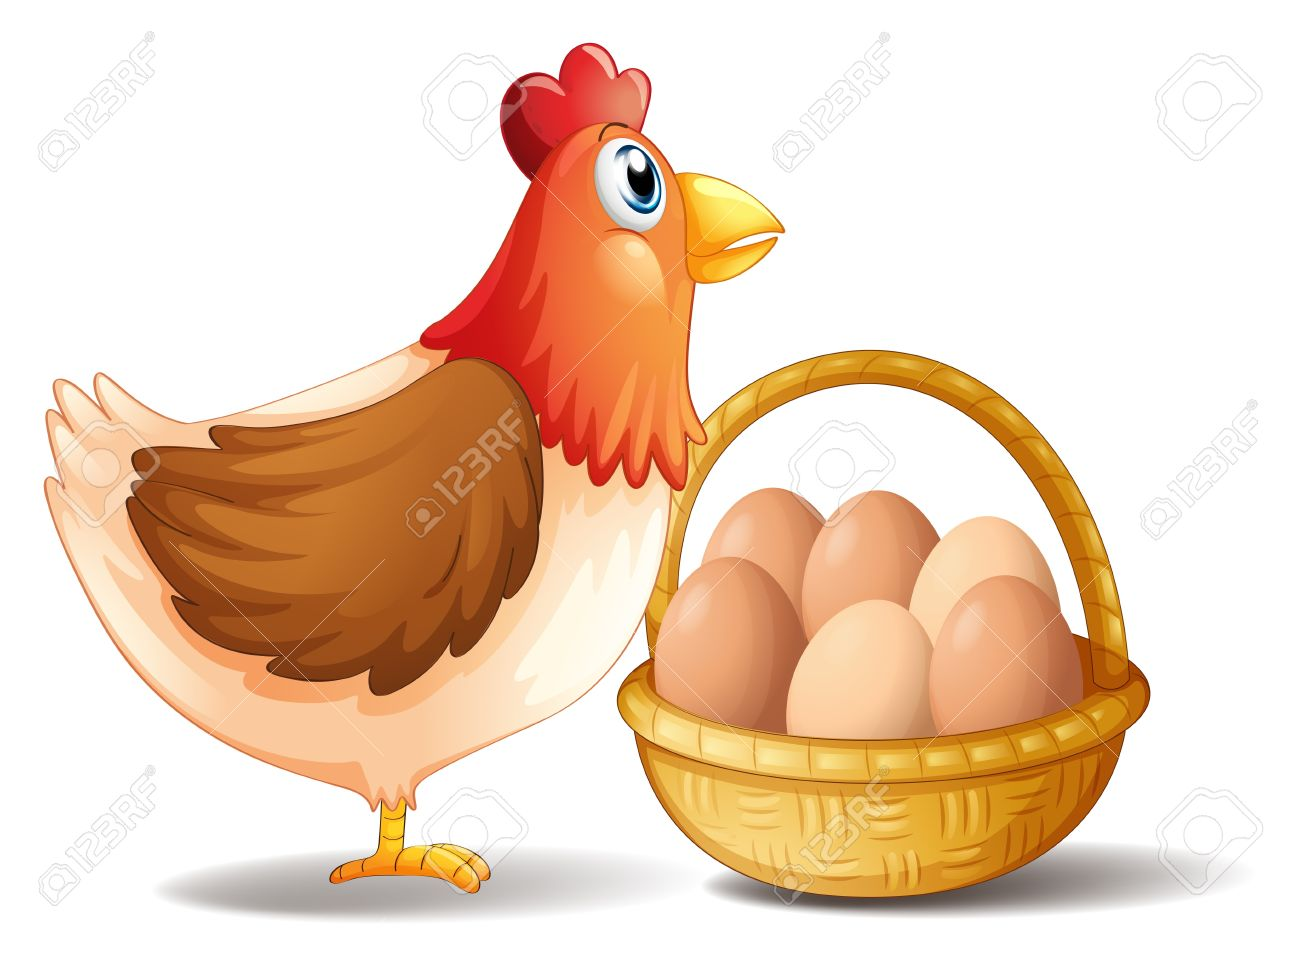 Illustration of the mother hen and a basket of eggs on a white background Stock Vector - 18266297